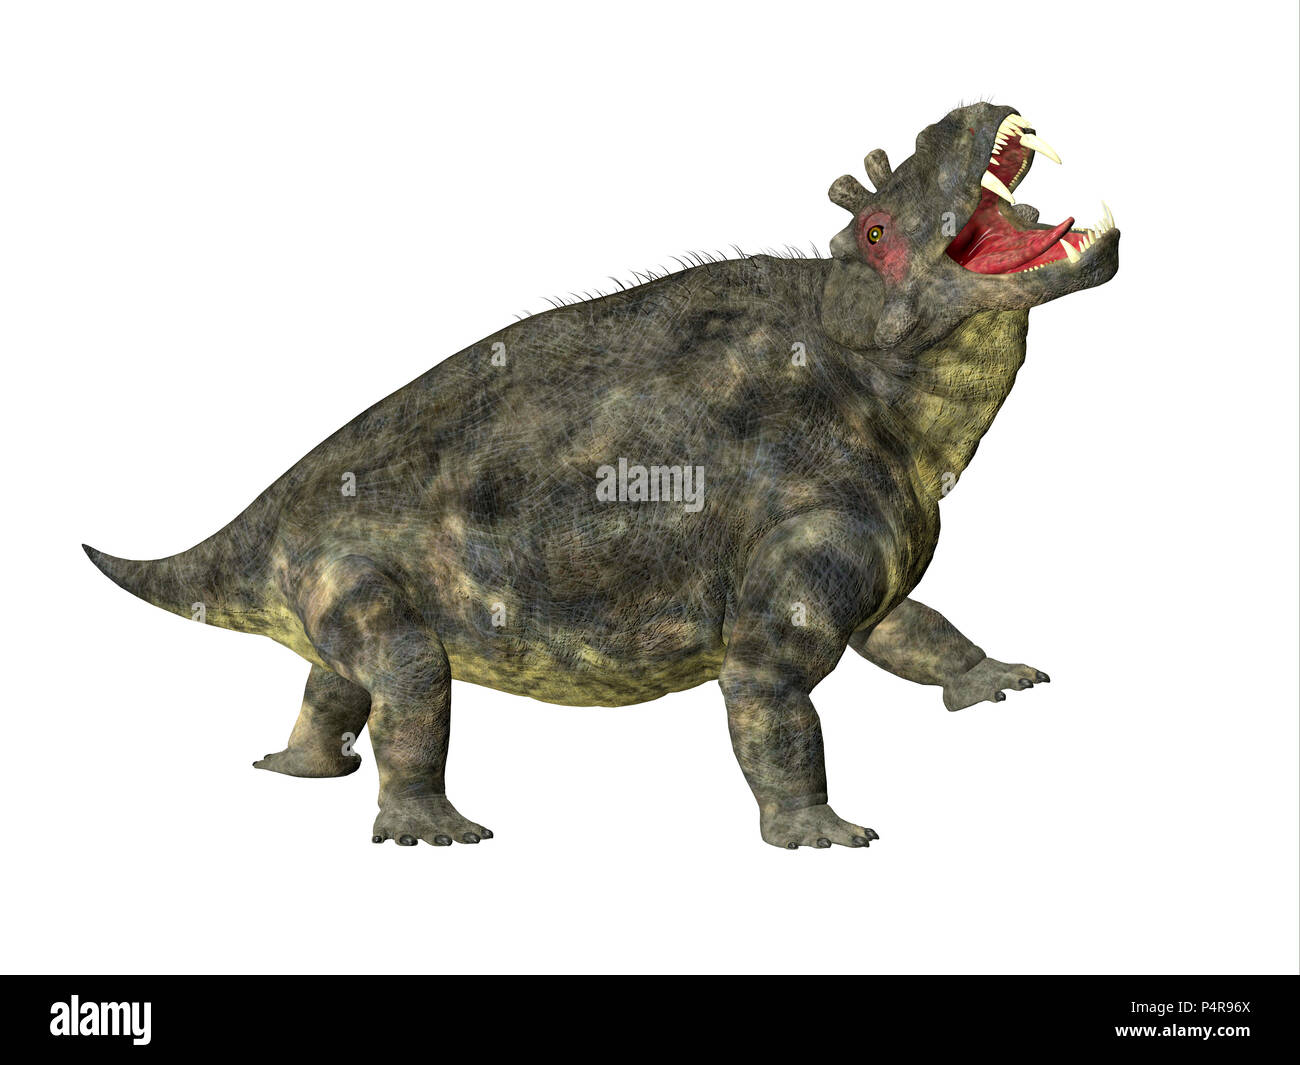 Estemmenosuchus uralensis Dinosaur Side Profile - Estemmenosuchus uralensis was an omnivorous therapsid dinosaur that lived in the Permian Period. - Stock Image